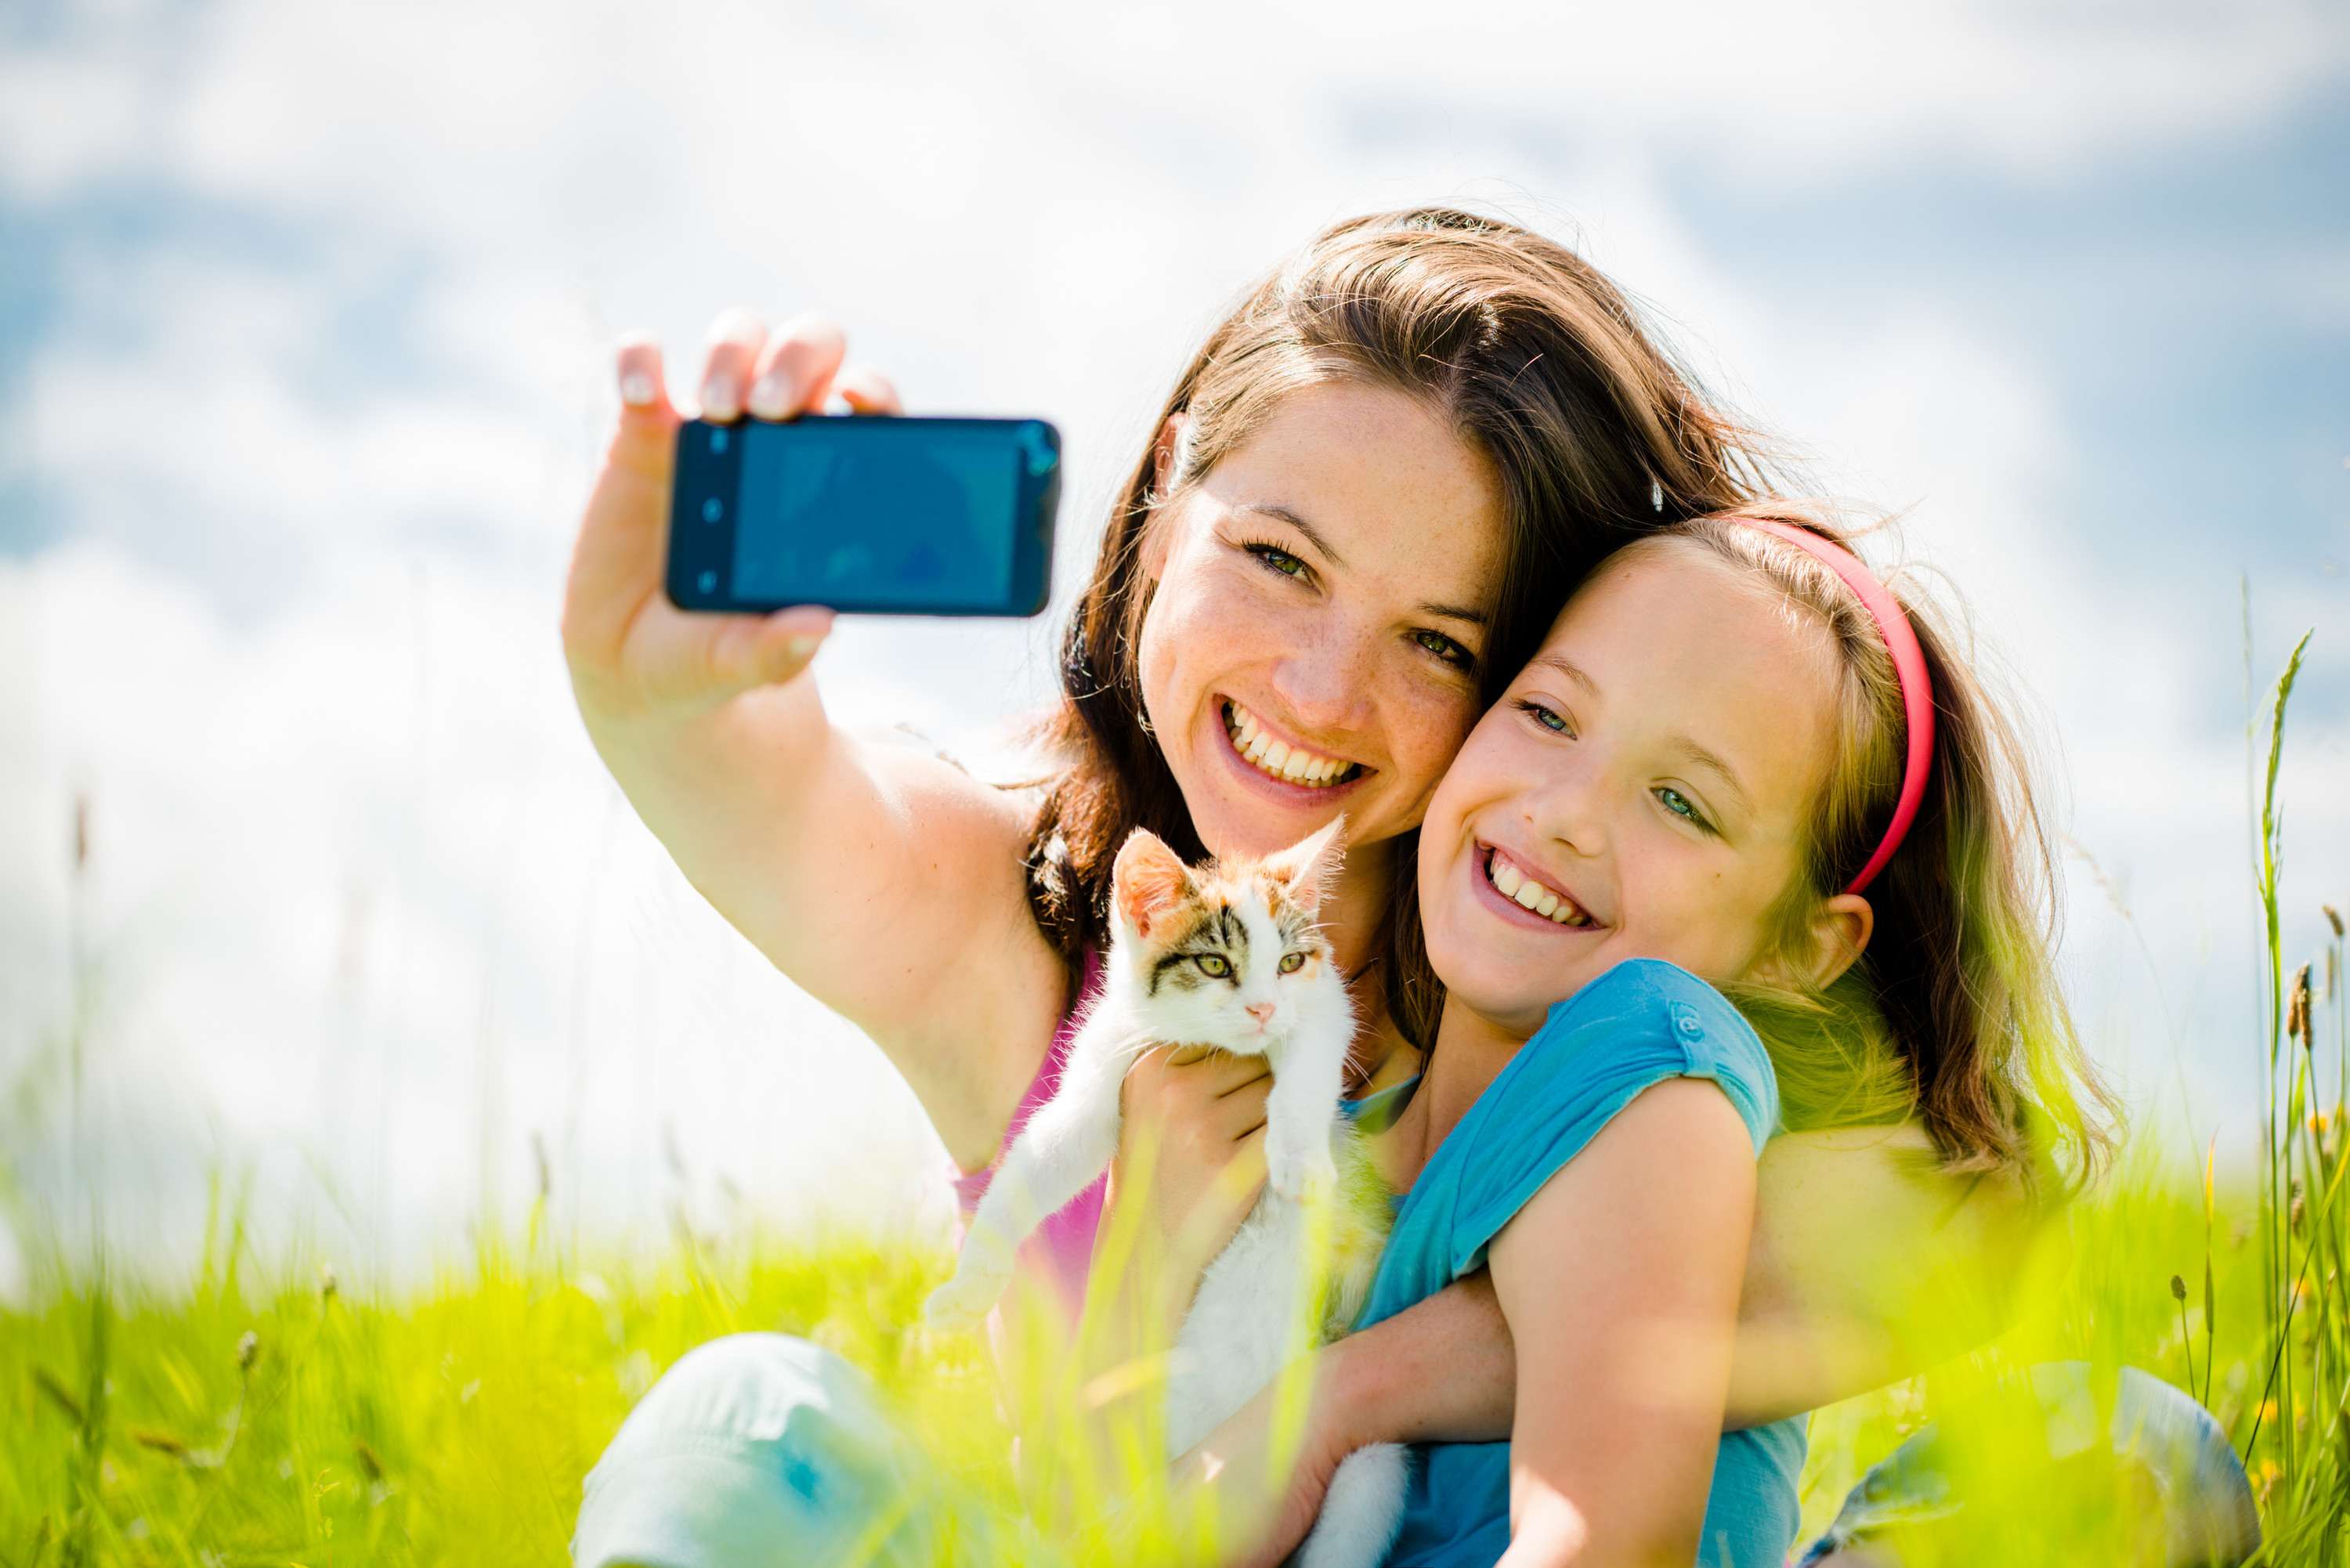 <div class='title'>           Mother and Child image         </div>                 <div class='description'>           Mother taking selfie of daughter and herself         </div>